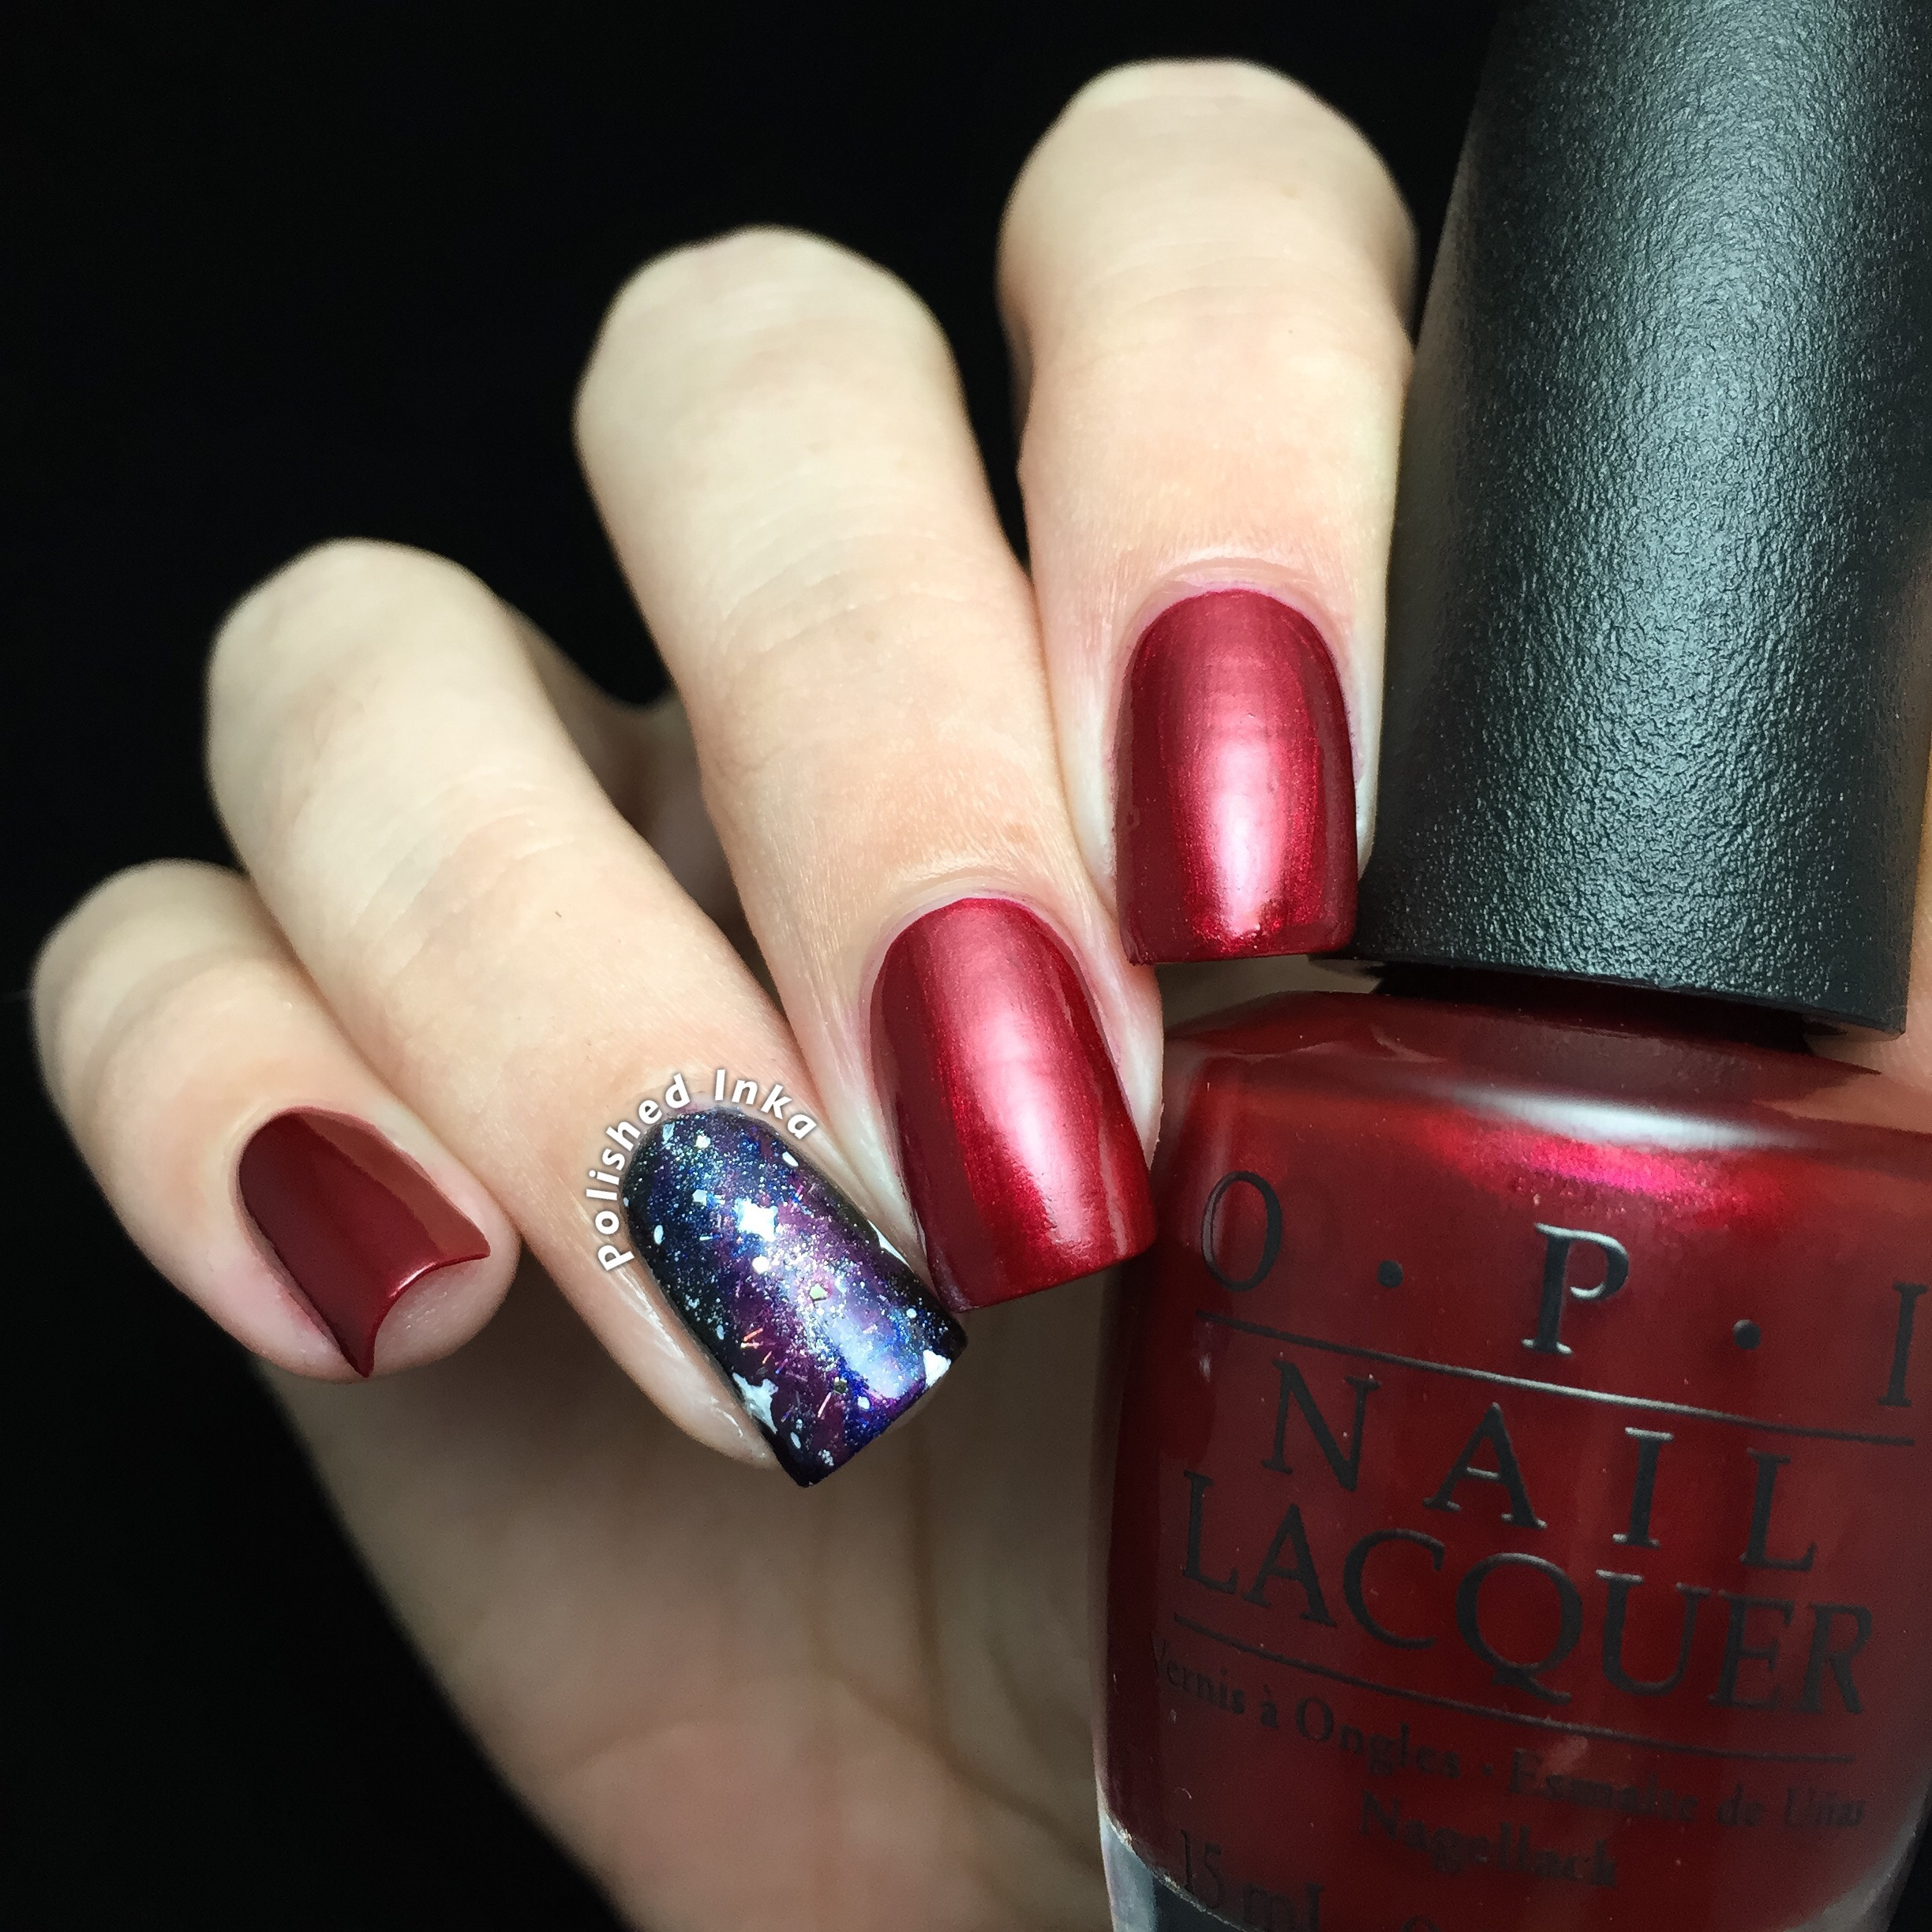 OPI Starlight Collection Christmas 2015 Ro-man-ce On The Moon Swatch